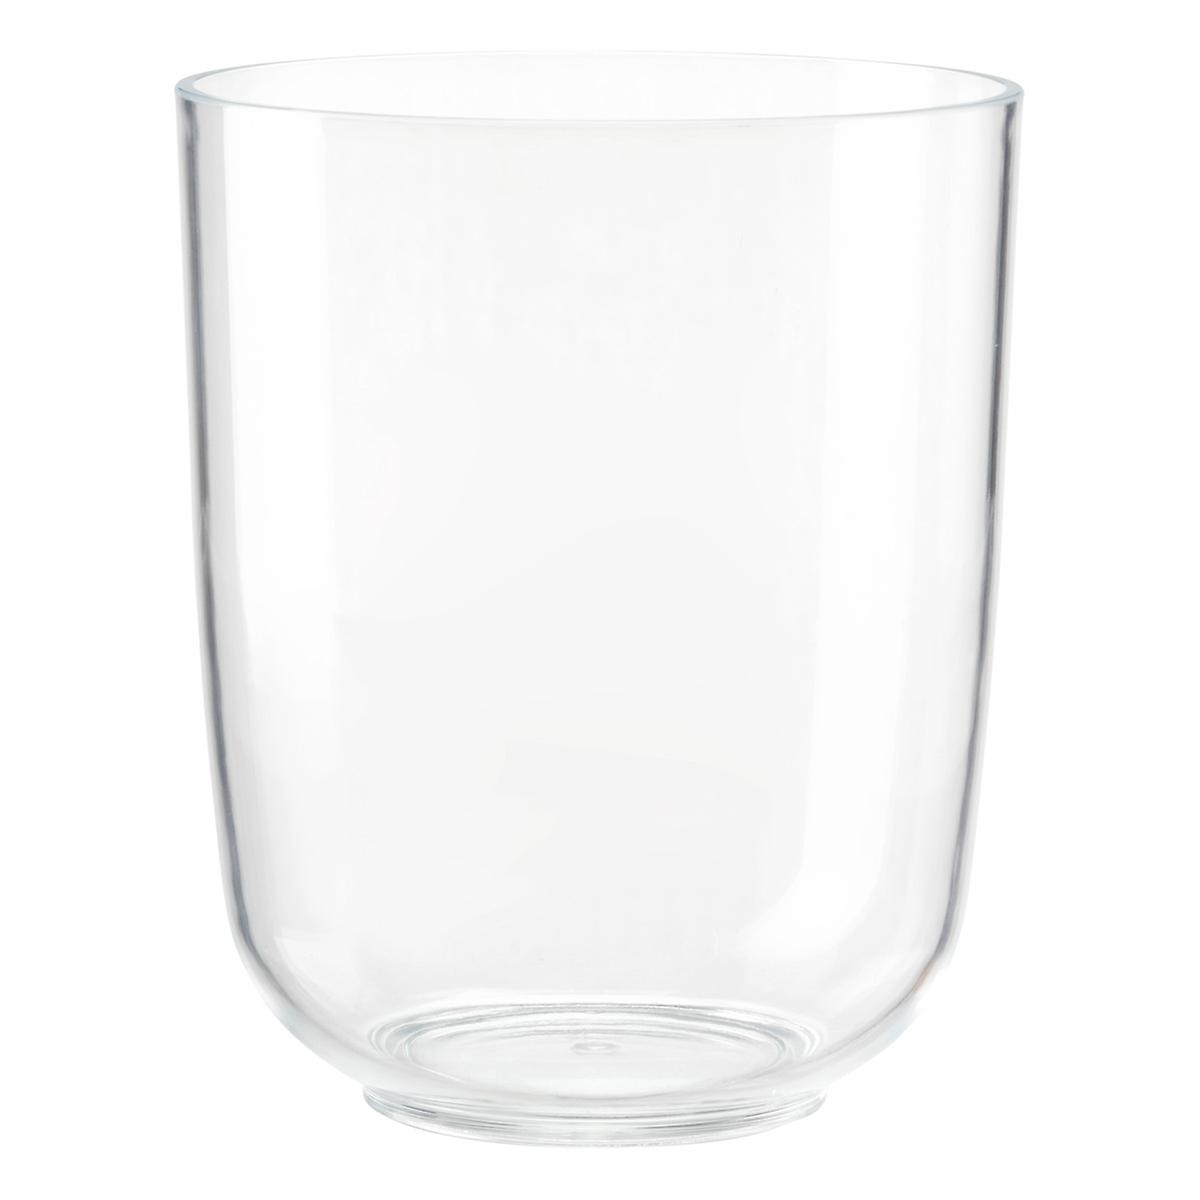 cleara acrylic trash canumbra | the container store